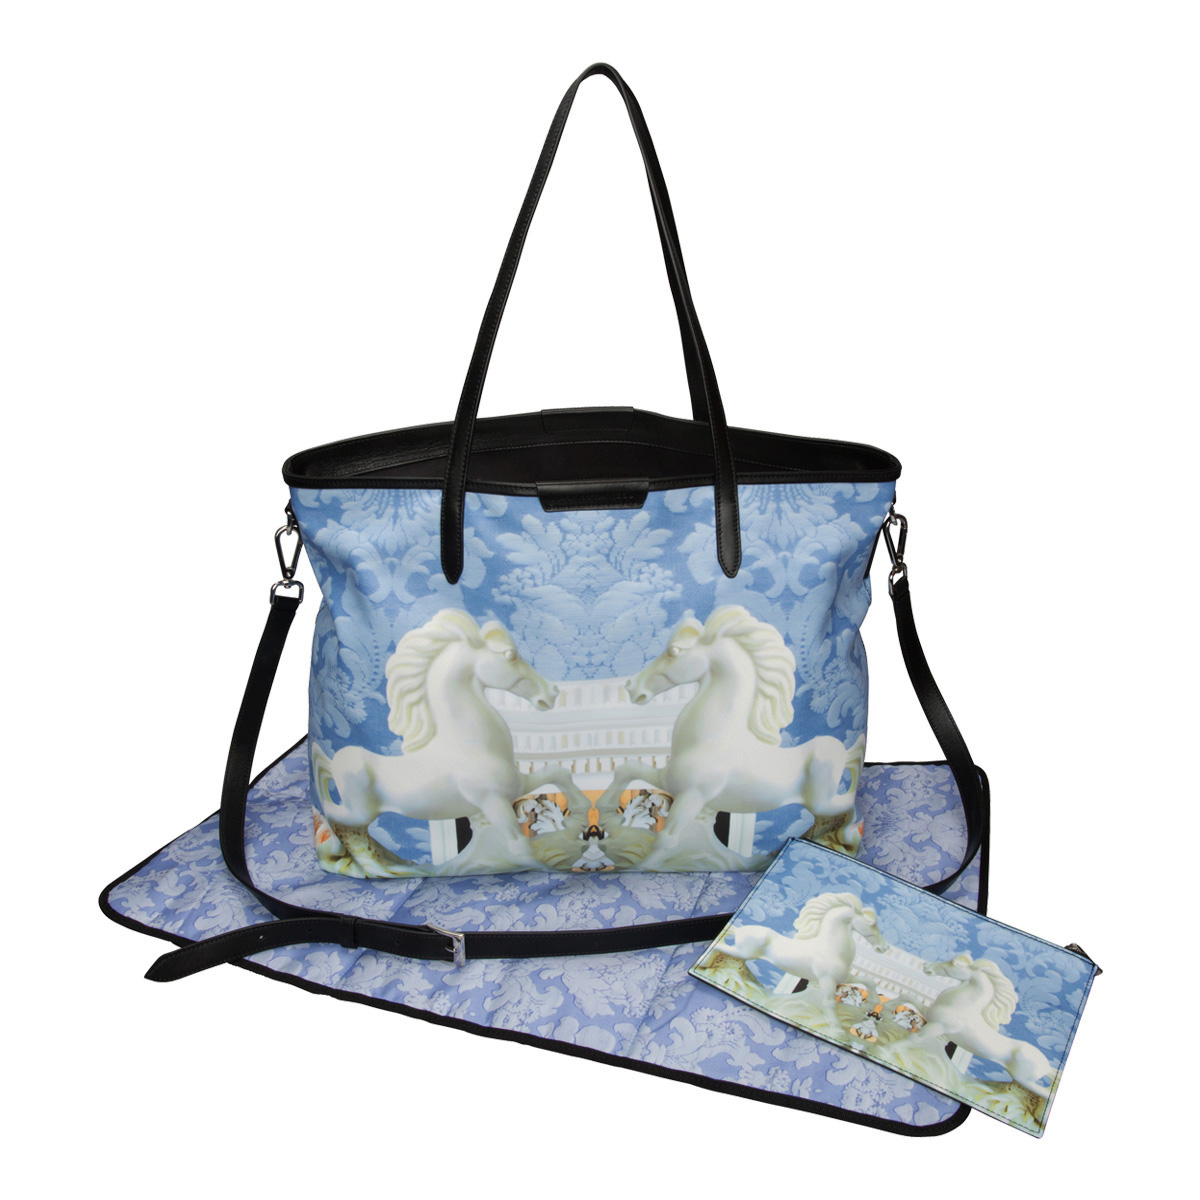 Mary Katrantzou Diaper Bag